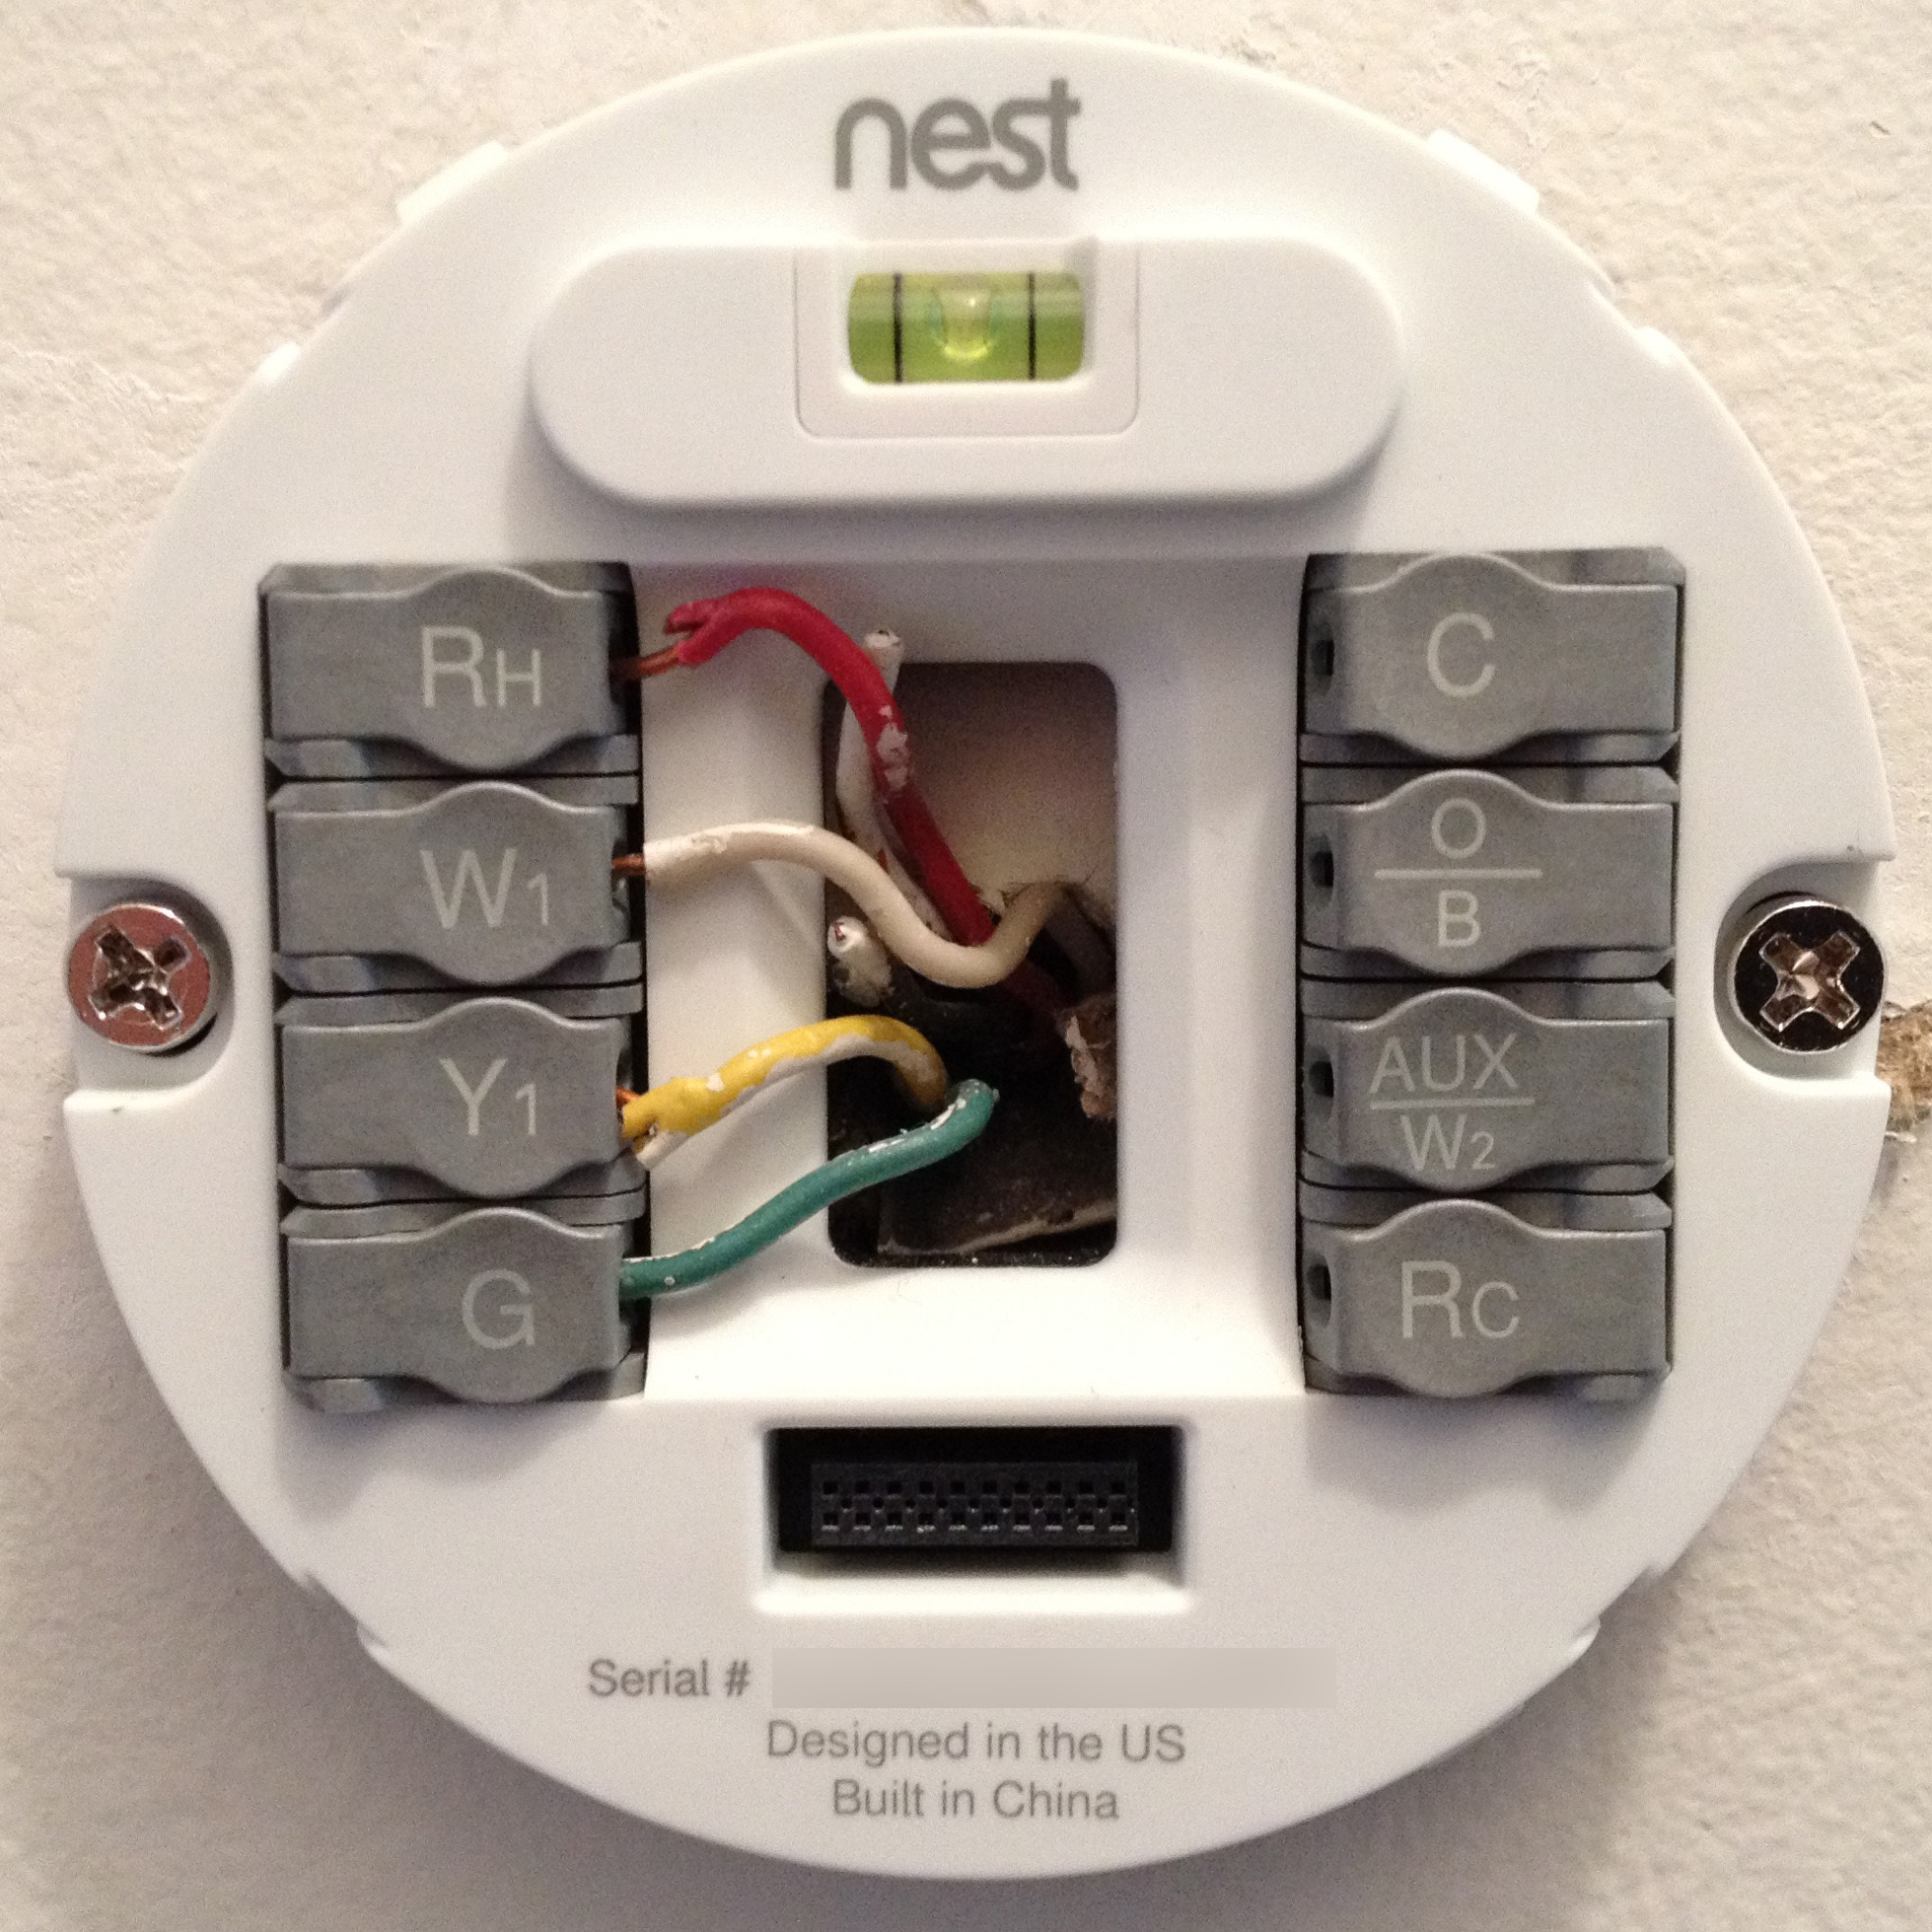 Nest Wiring Jumper - Wiring Diagram Write on thermostat relay, thermostat switch, thermostat parts, thermostat piping, thermostat wire colors, thermostat troubleshooting, thermostat clip art, thermostat terminals, thermostat controls, thermostat replacement, thermostat hookup, thermostat covers, thermostat wire roll, thermostat schematic, thermostat hose, thermostat harness, thermostat installation, thermostat thermistor, thermostat regulator, thermostat c wire,